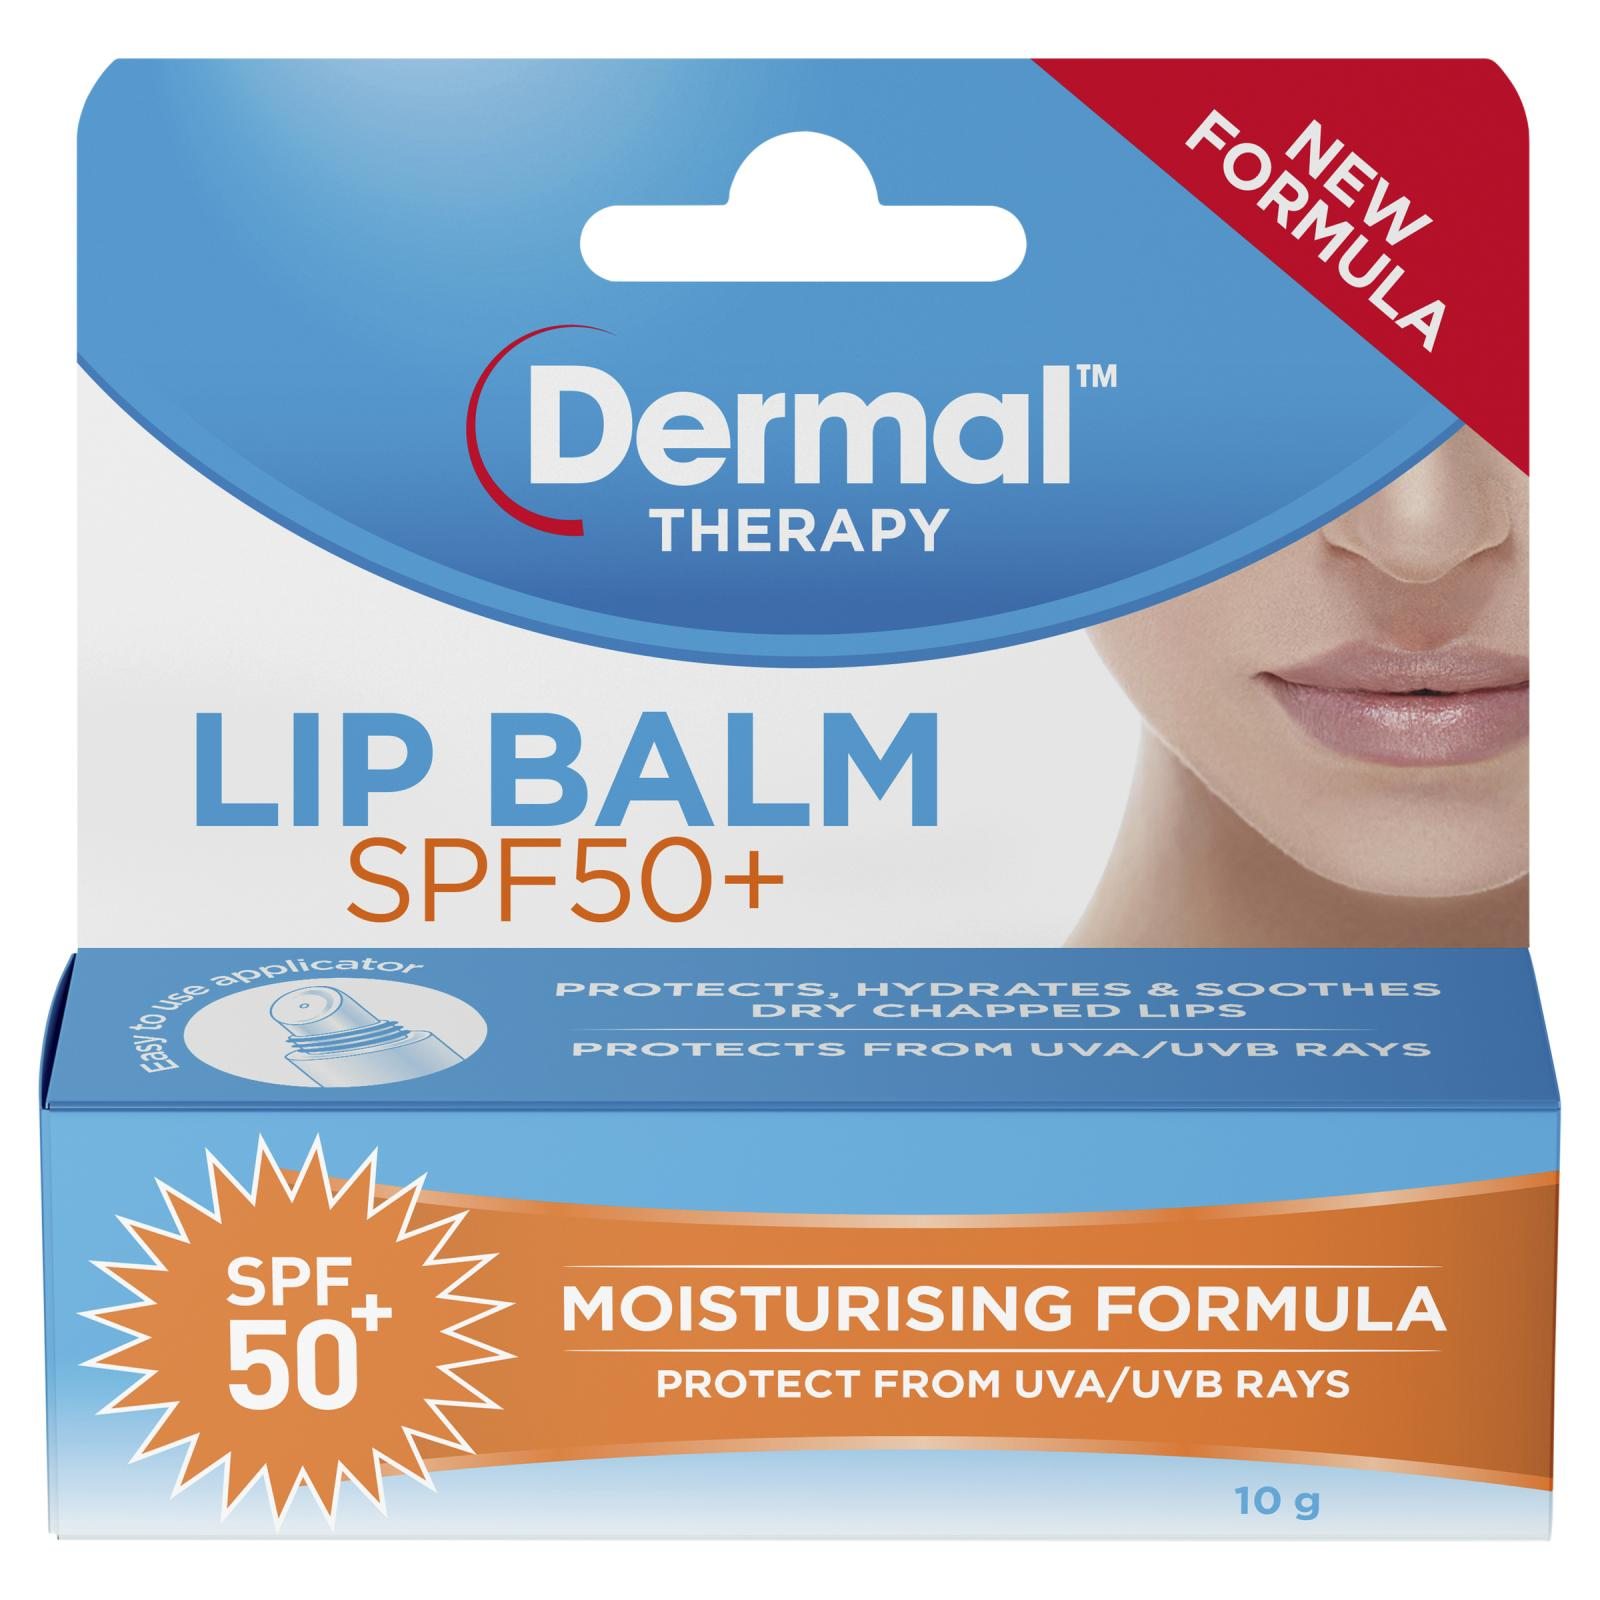 Dermal Therapy Ultra Protectant SPF 50+ Lip Balm 10g